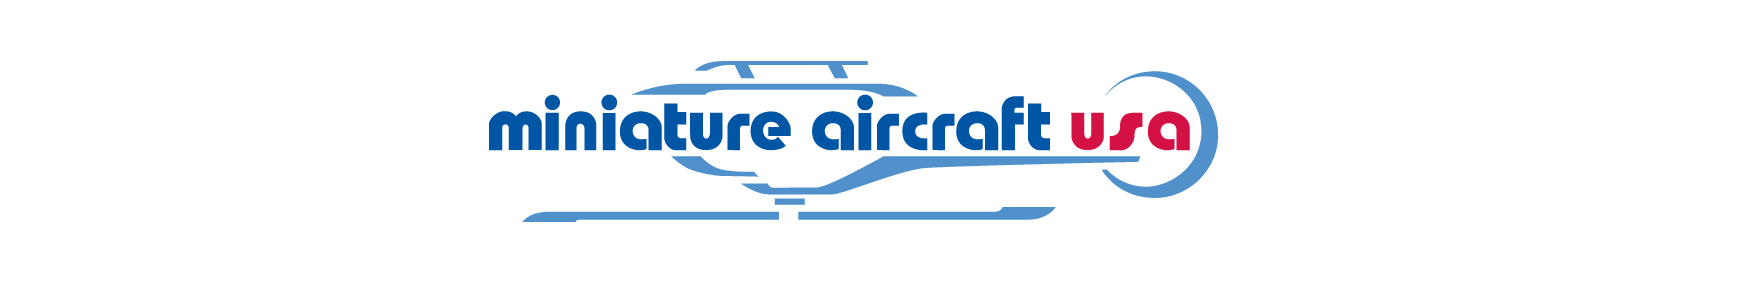 MINIATURE AIRCRAFT USA LOGO